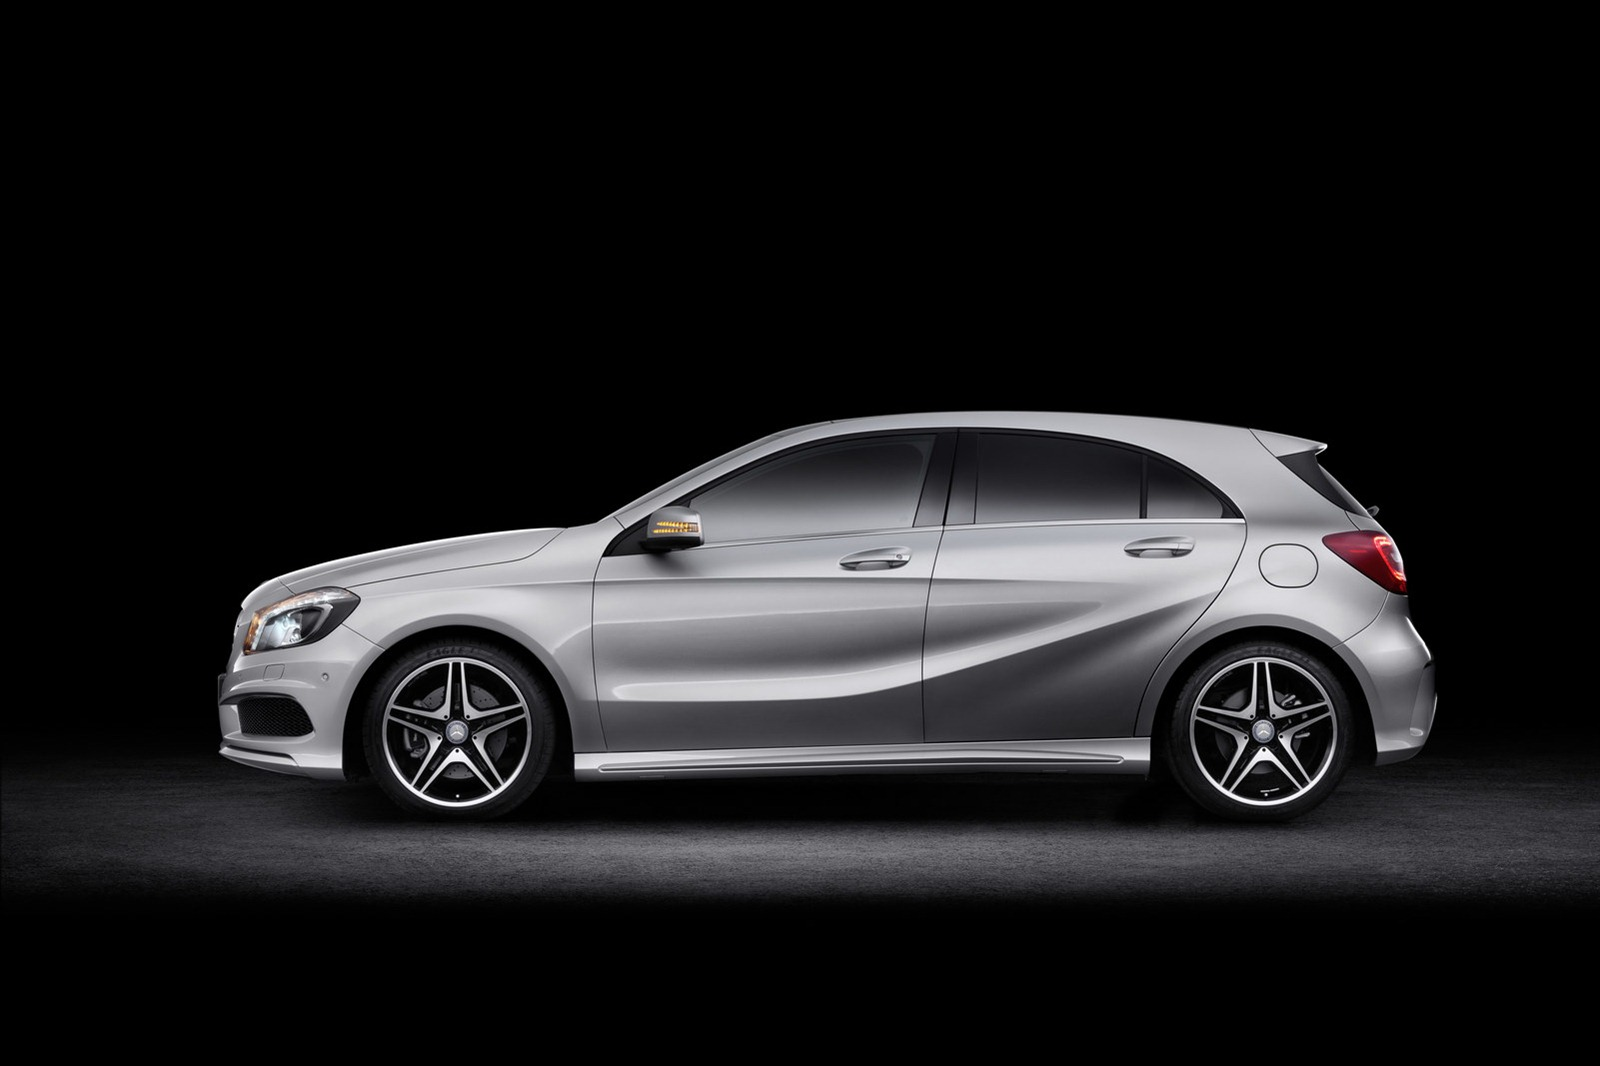 2012 mercedes benz a class new photos released autoevolution for The latest mercedes benz